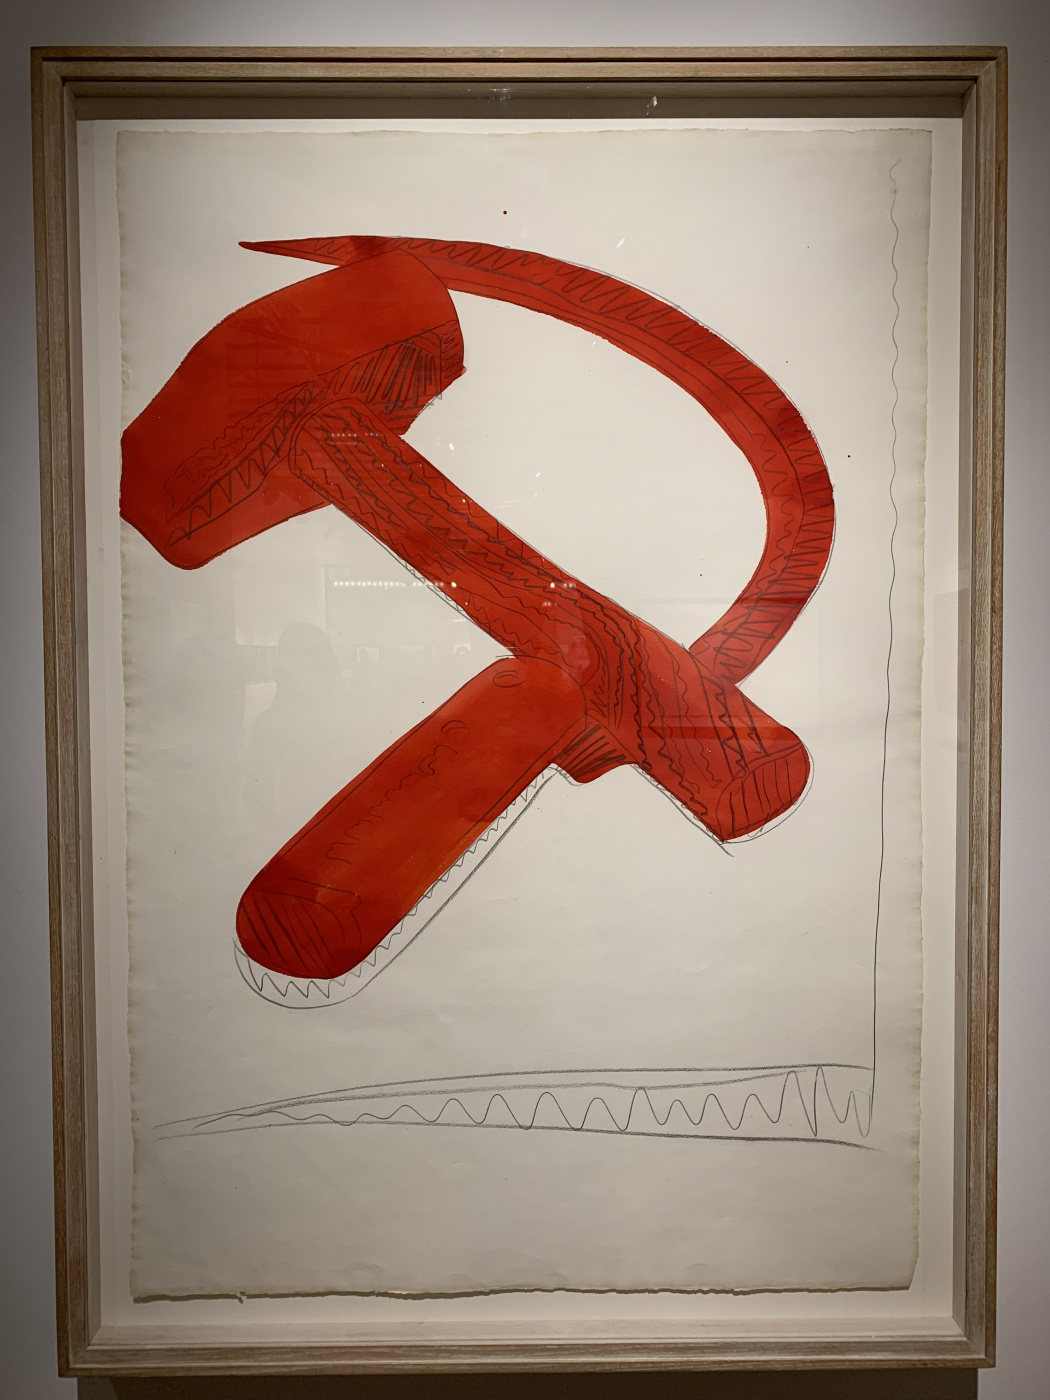 Andy Warho. Hammer and sickle